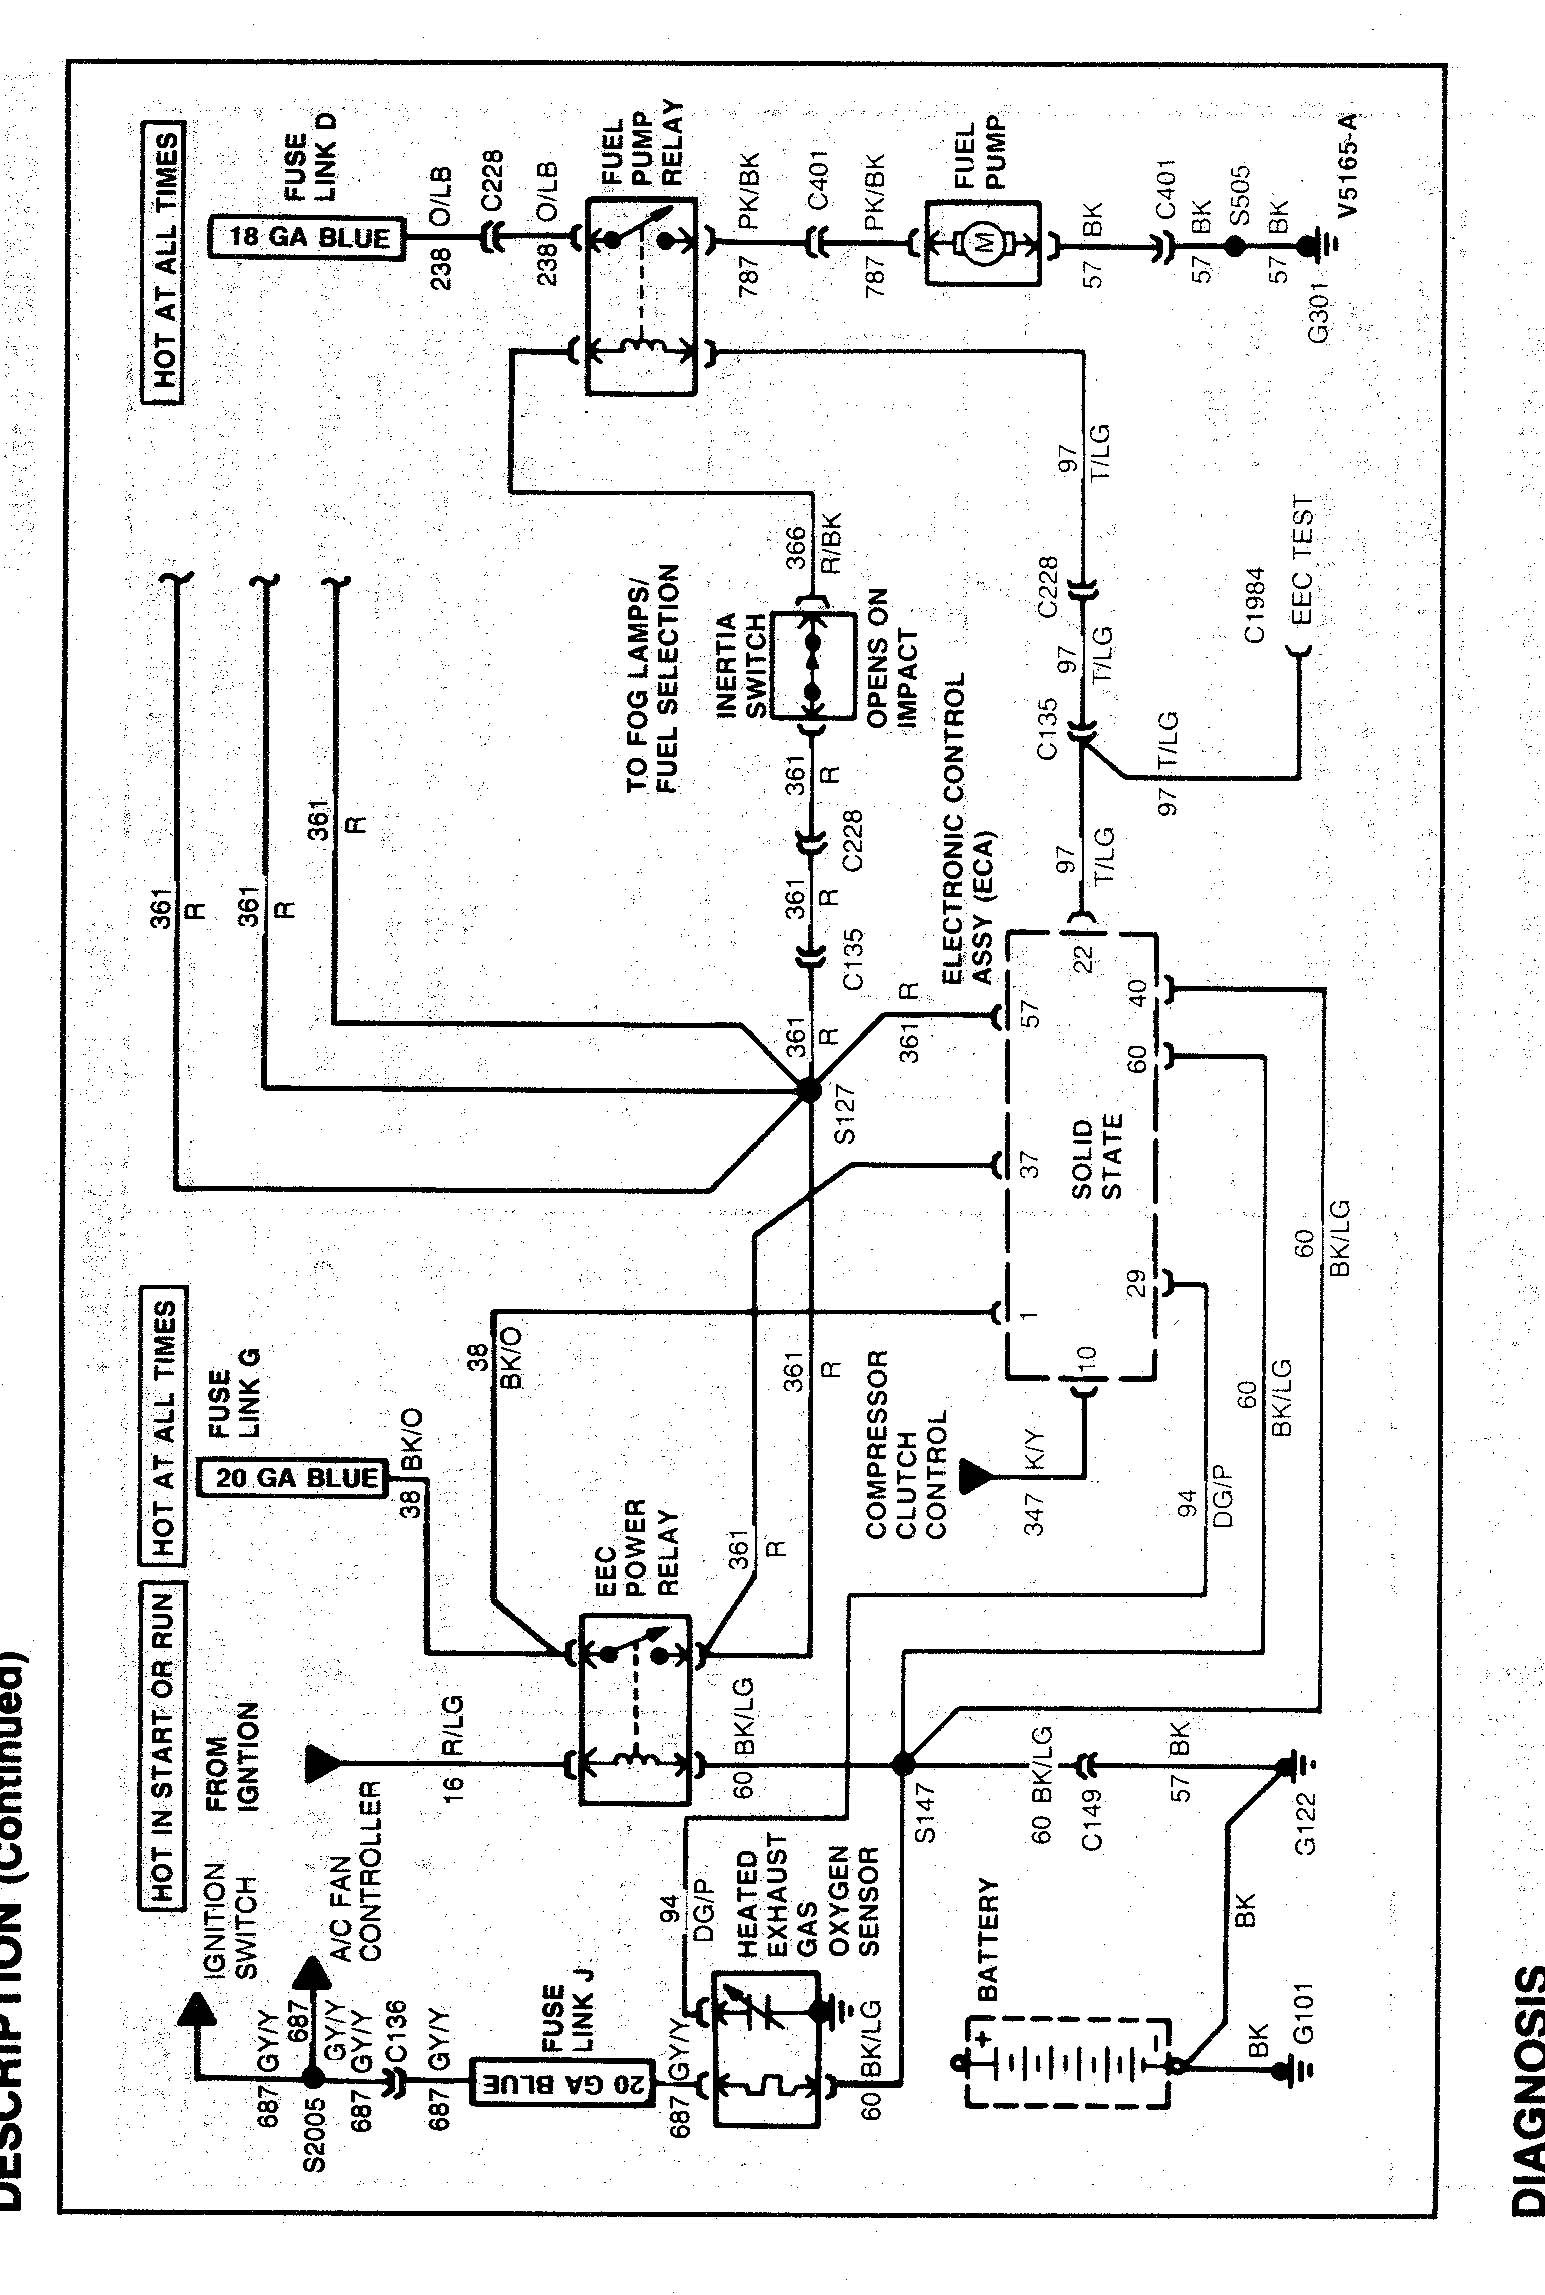 2000 Mustang Fuel Pump Wiring Diagram 37 Images 1989 Ford Econoline Fuse Box 1928d1051592166 May Electrical But Mustangfuelelectricaldiagram2 100 Horn 63 Impala